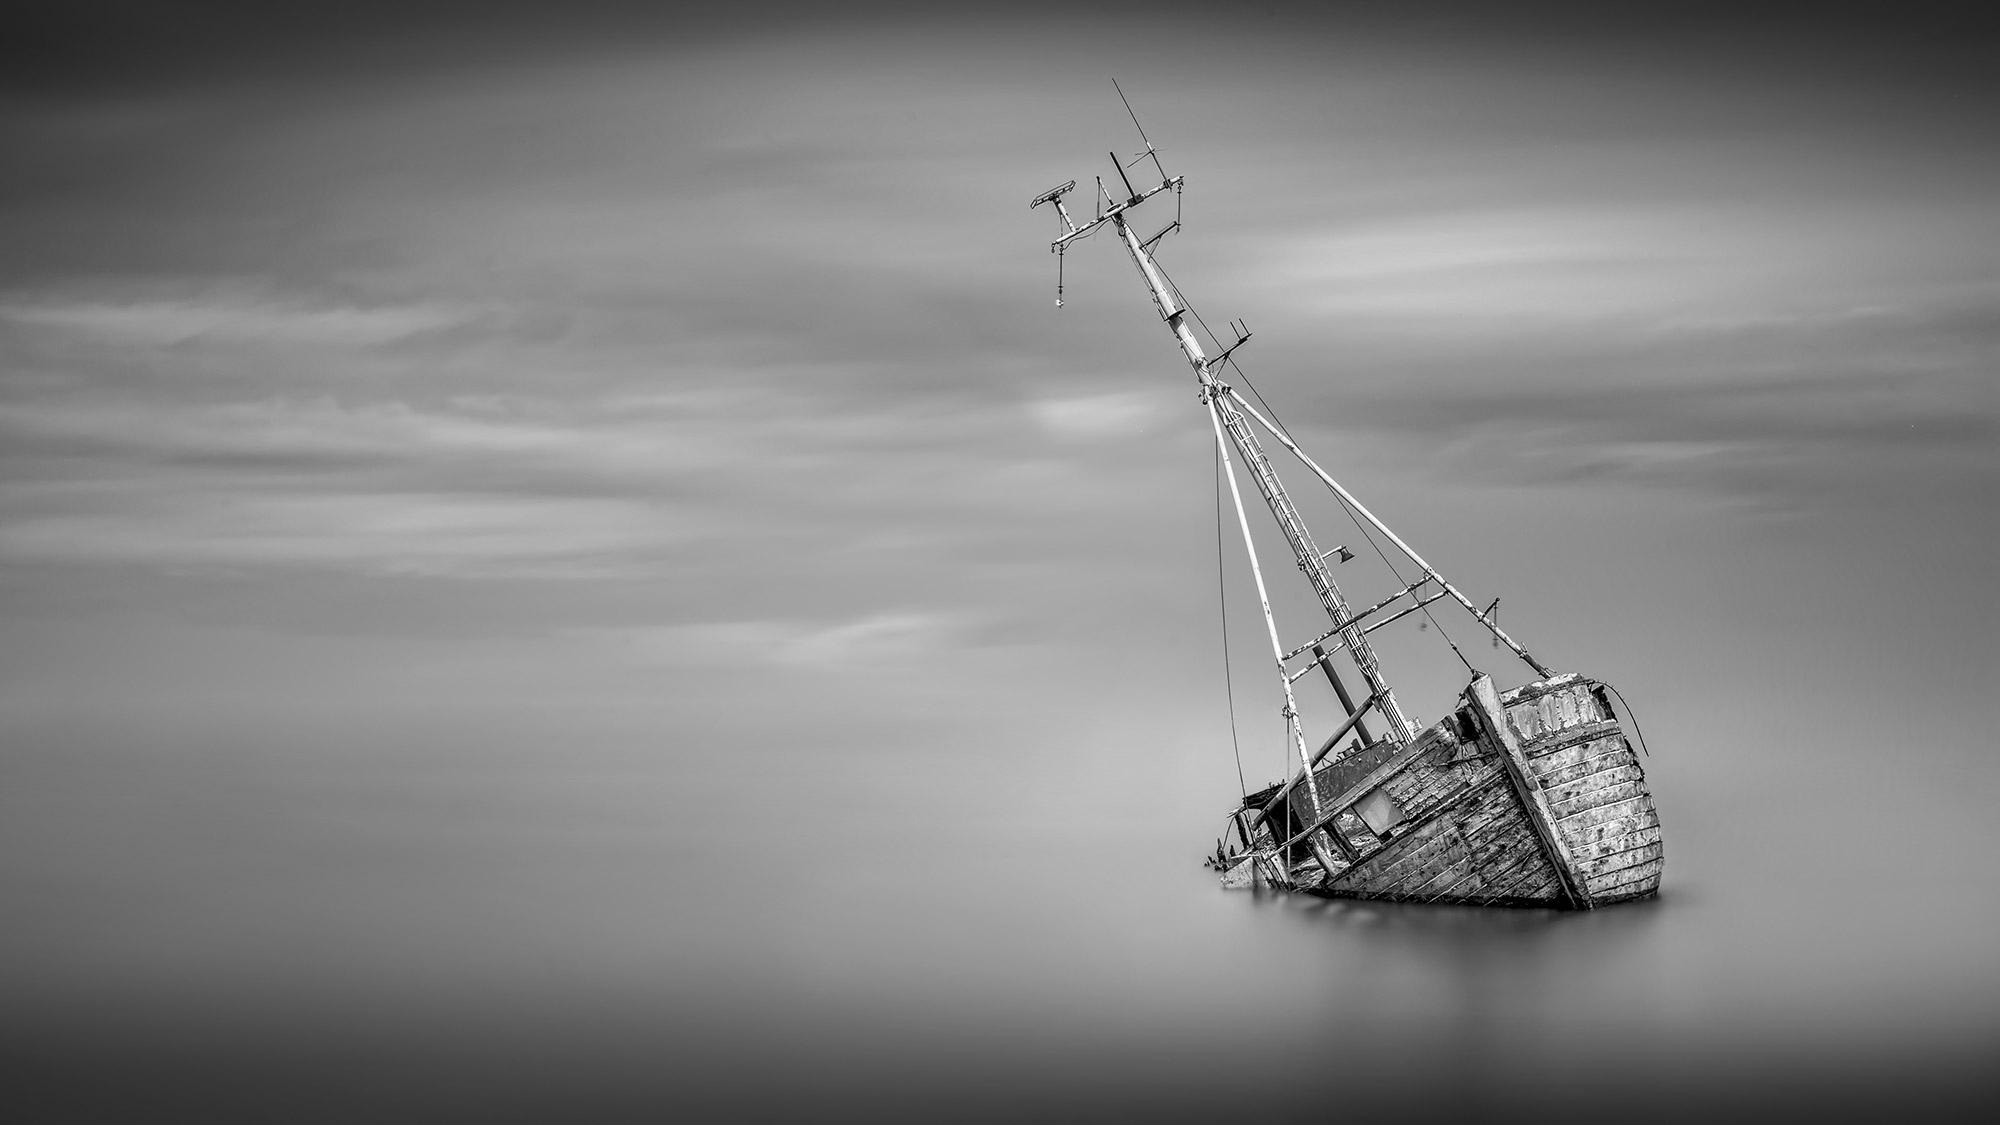 Pin Mill Boat Wrecks Landscape Photography